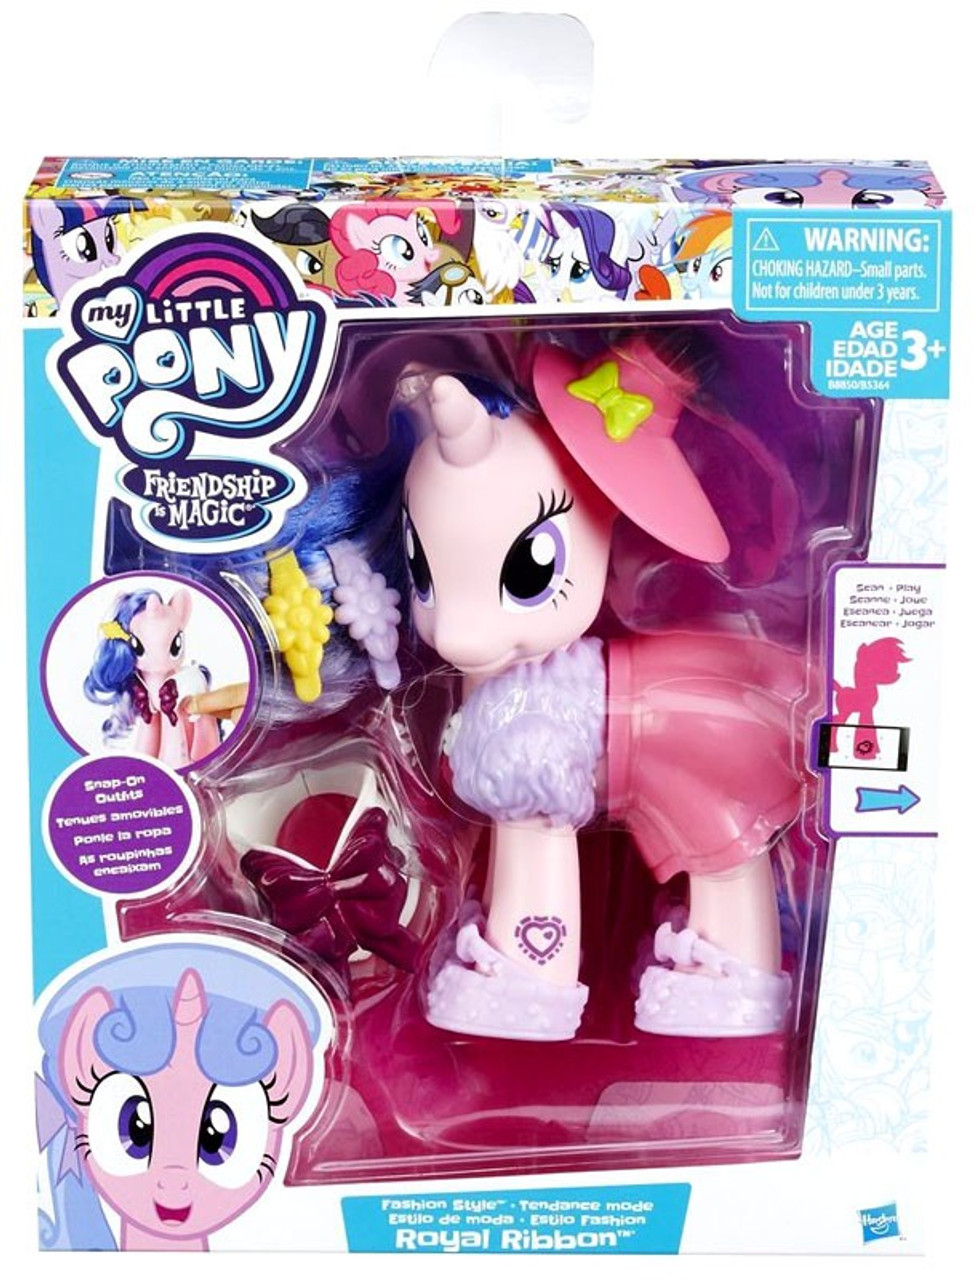 7b46fbe7 Dolls & Accessories My Little Pony Hat Box with Figures Hasbro Dolls' House  Dolls & Accessories